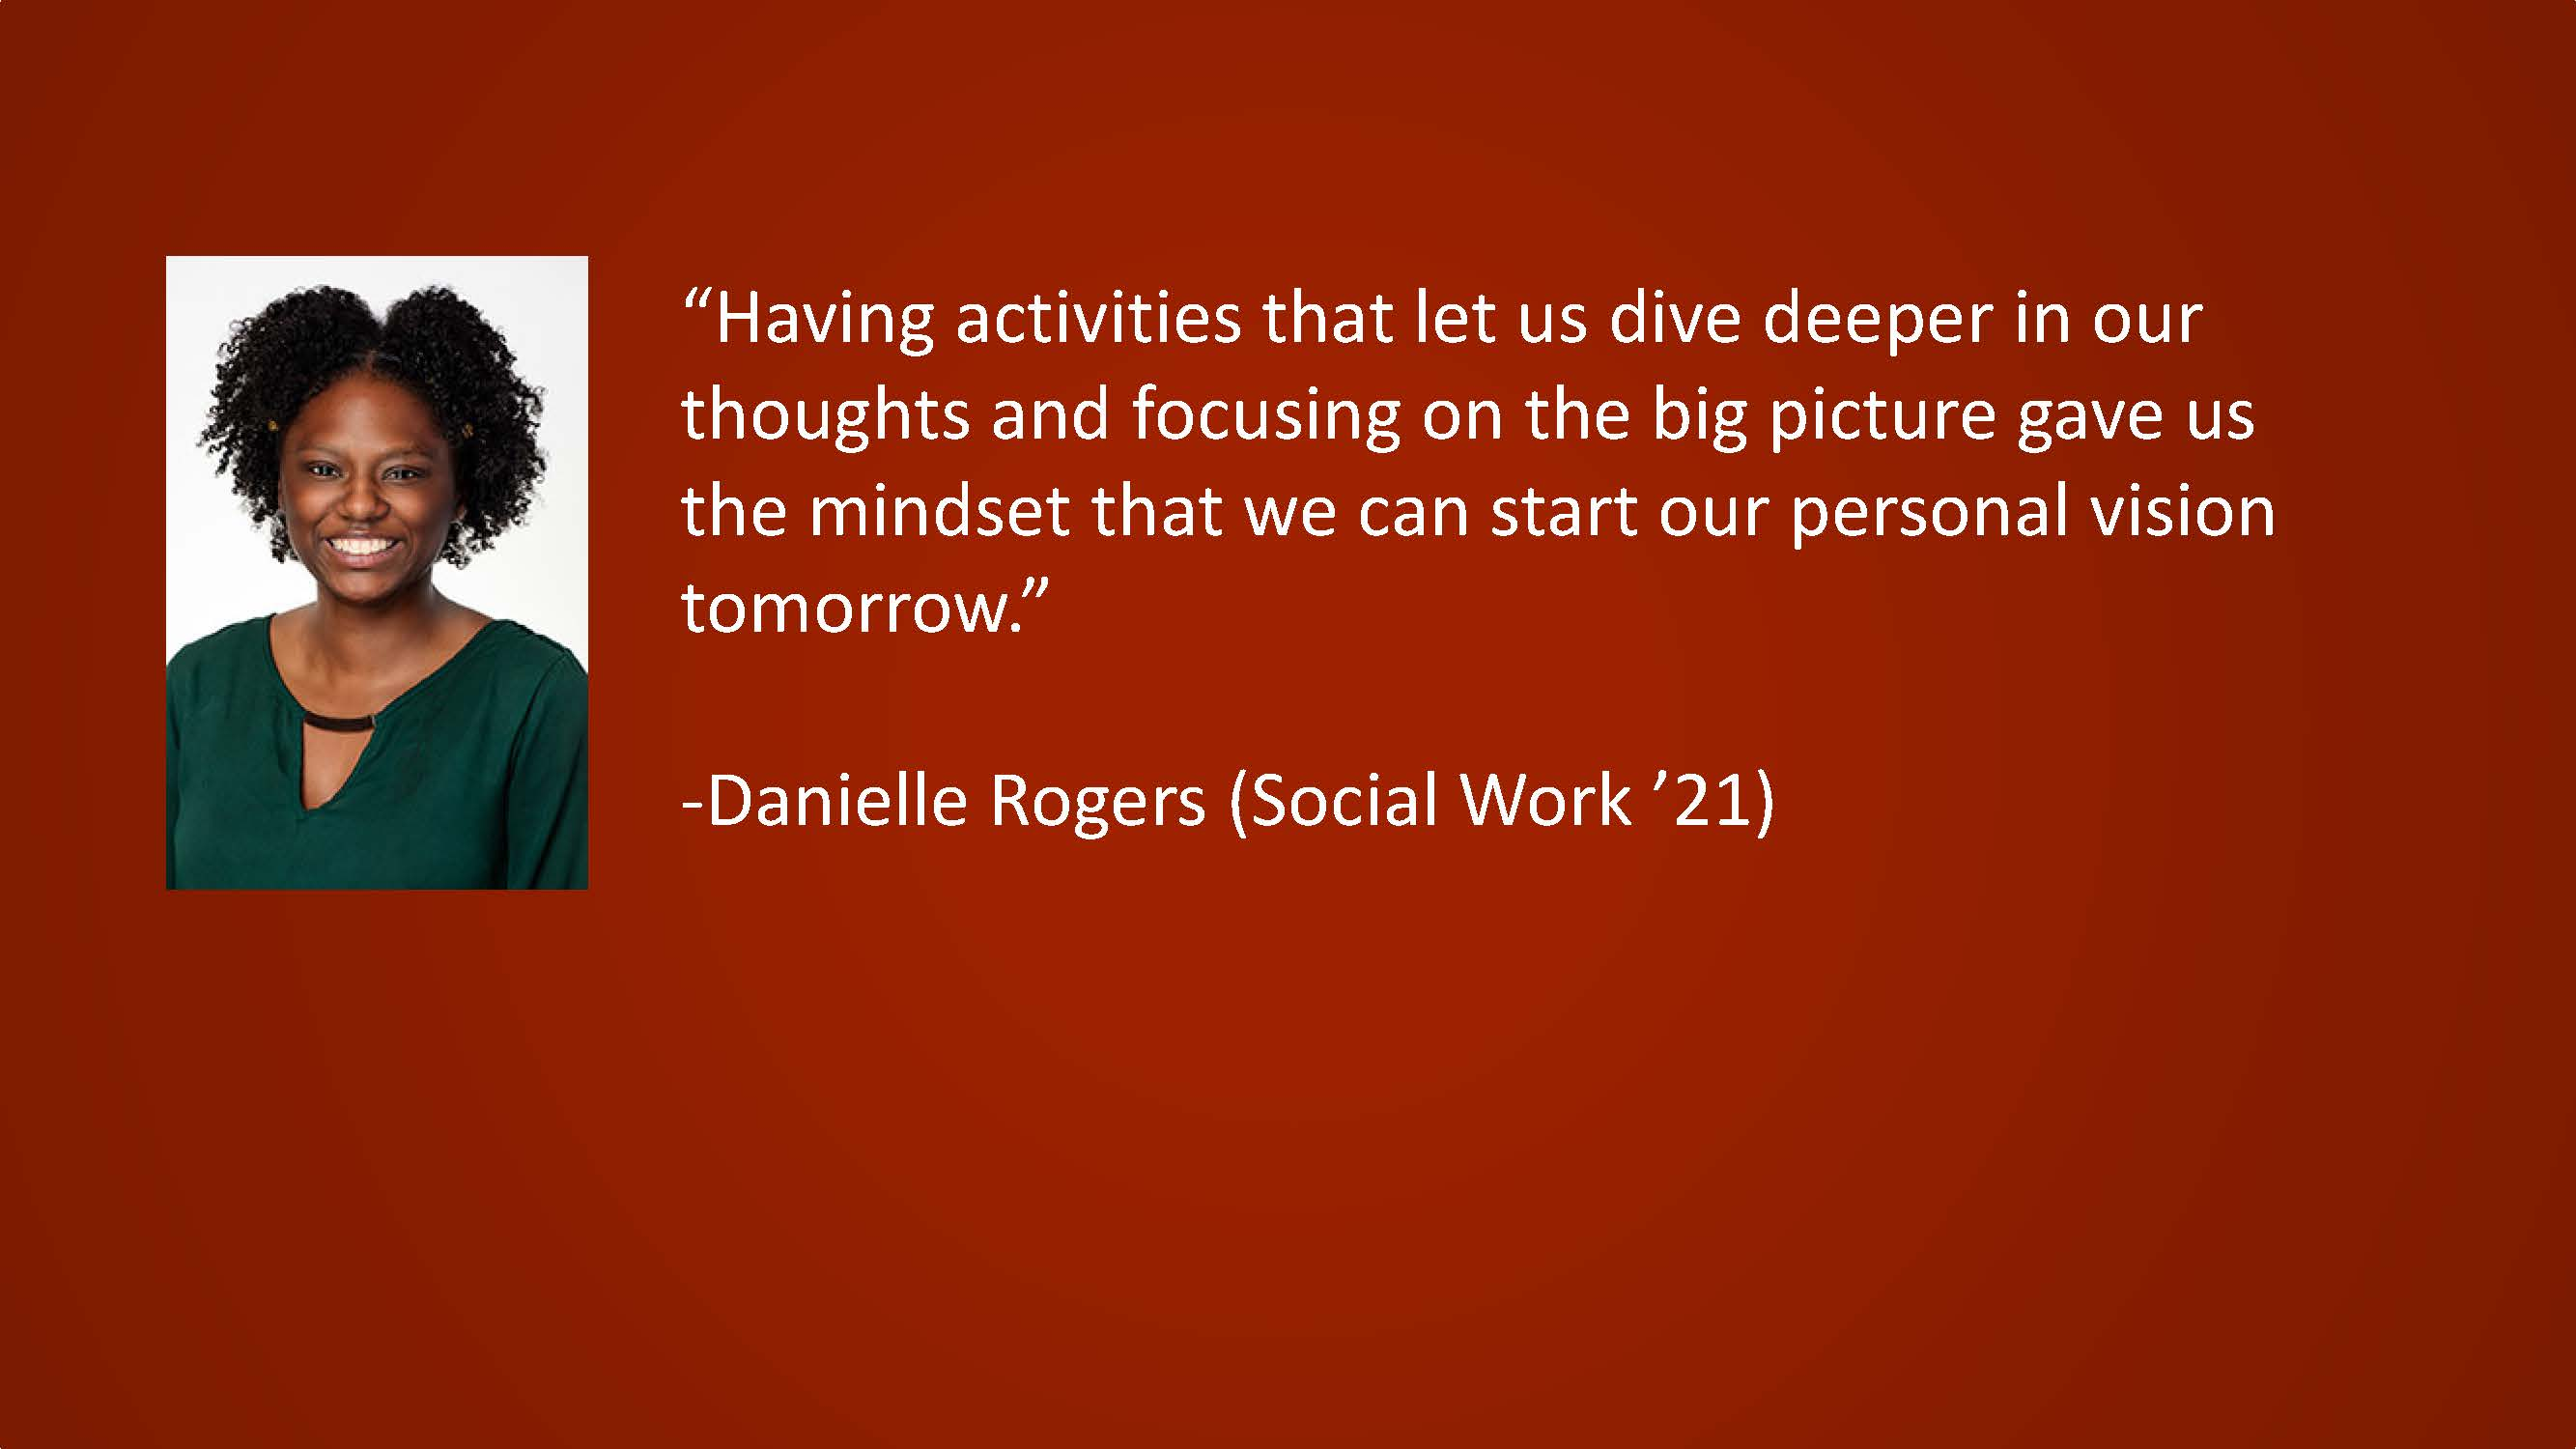 Having activities that let us dive deeper in our thoughts and focusing on the big picture gave us the mindset that we can start our personal vision tomorrow. — Danielle Rogers (Social Work '21)